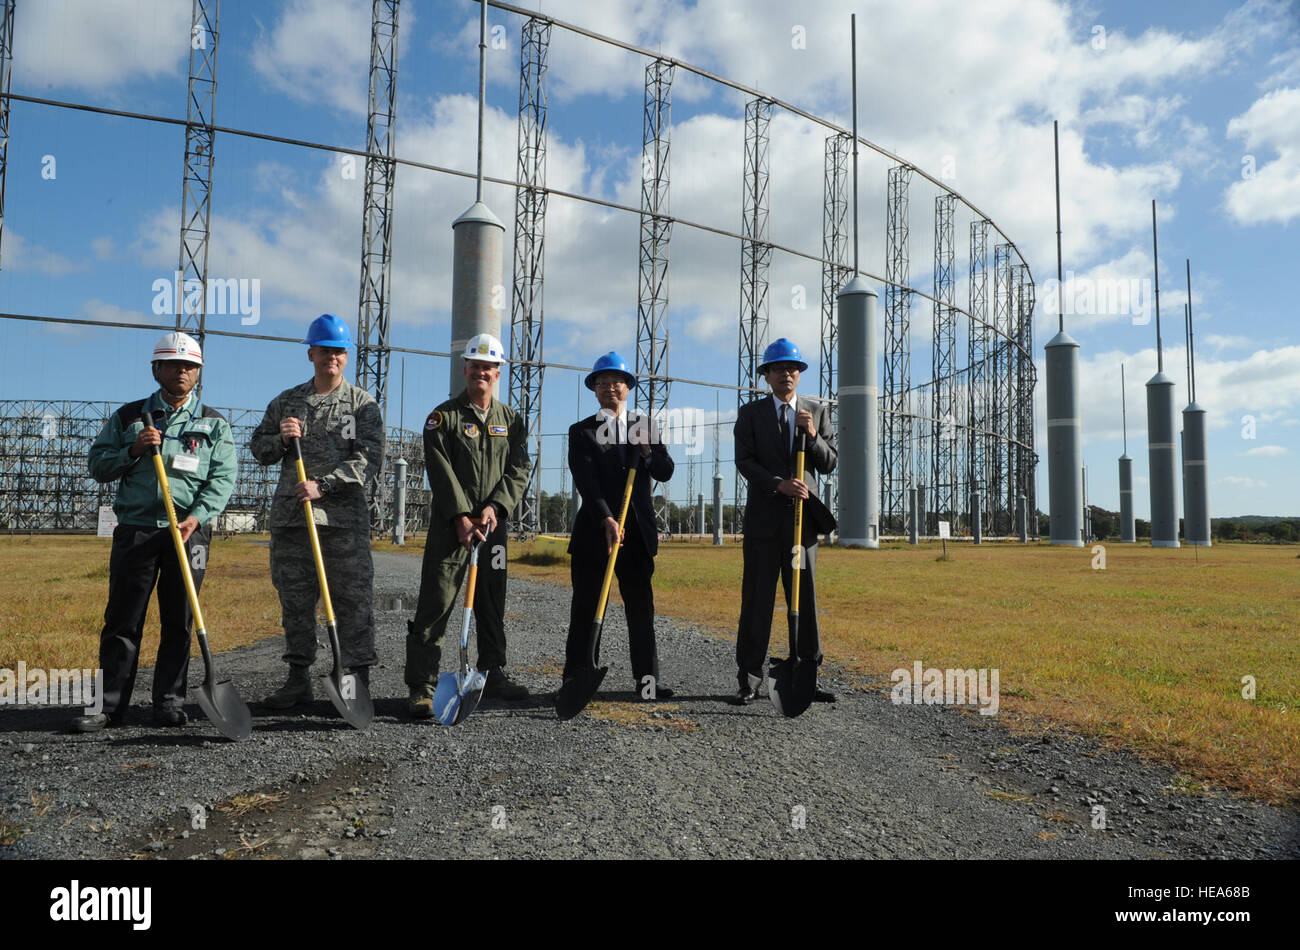 Misawa Air Base leadership and Misawa City officials take part in a ground-breaking ceremony, signifying the start - Stock Image